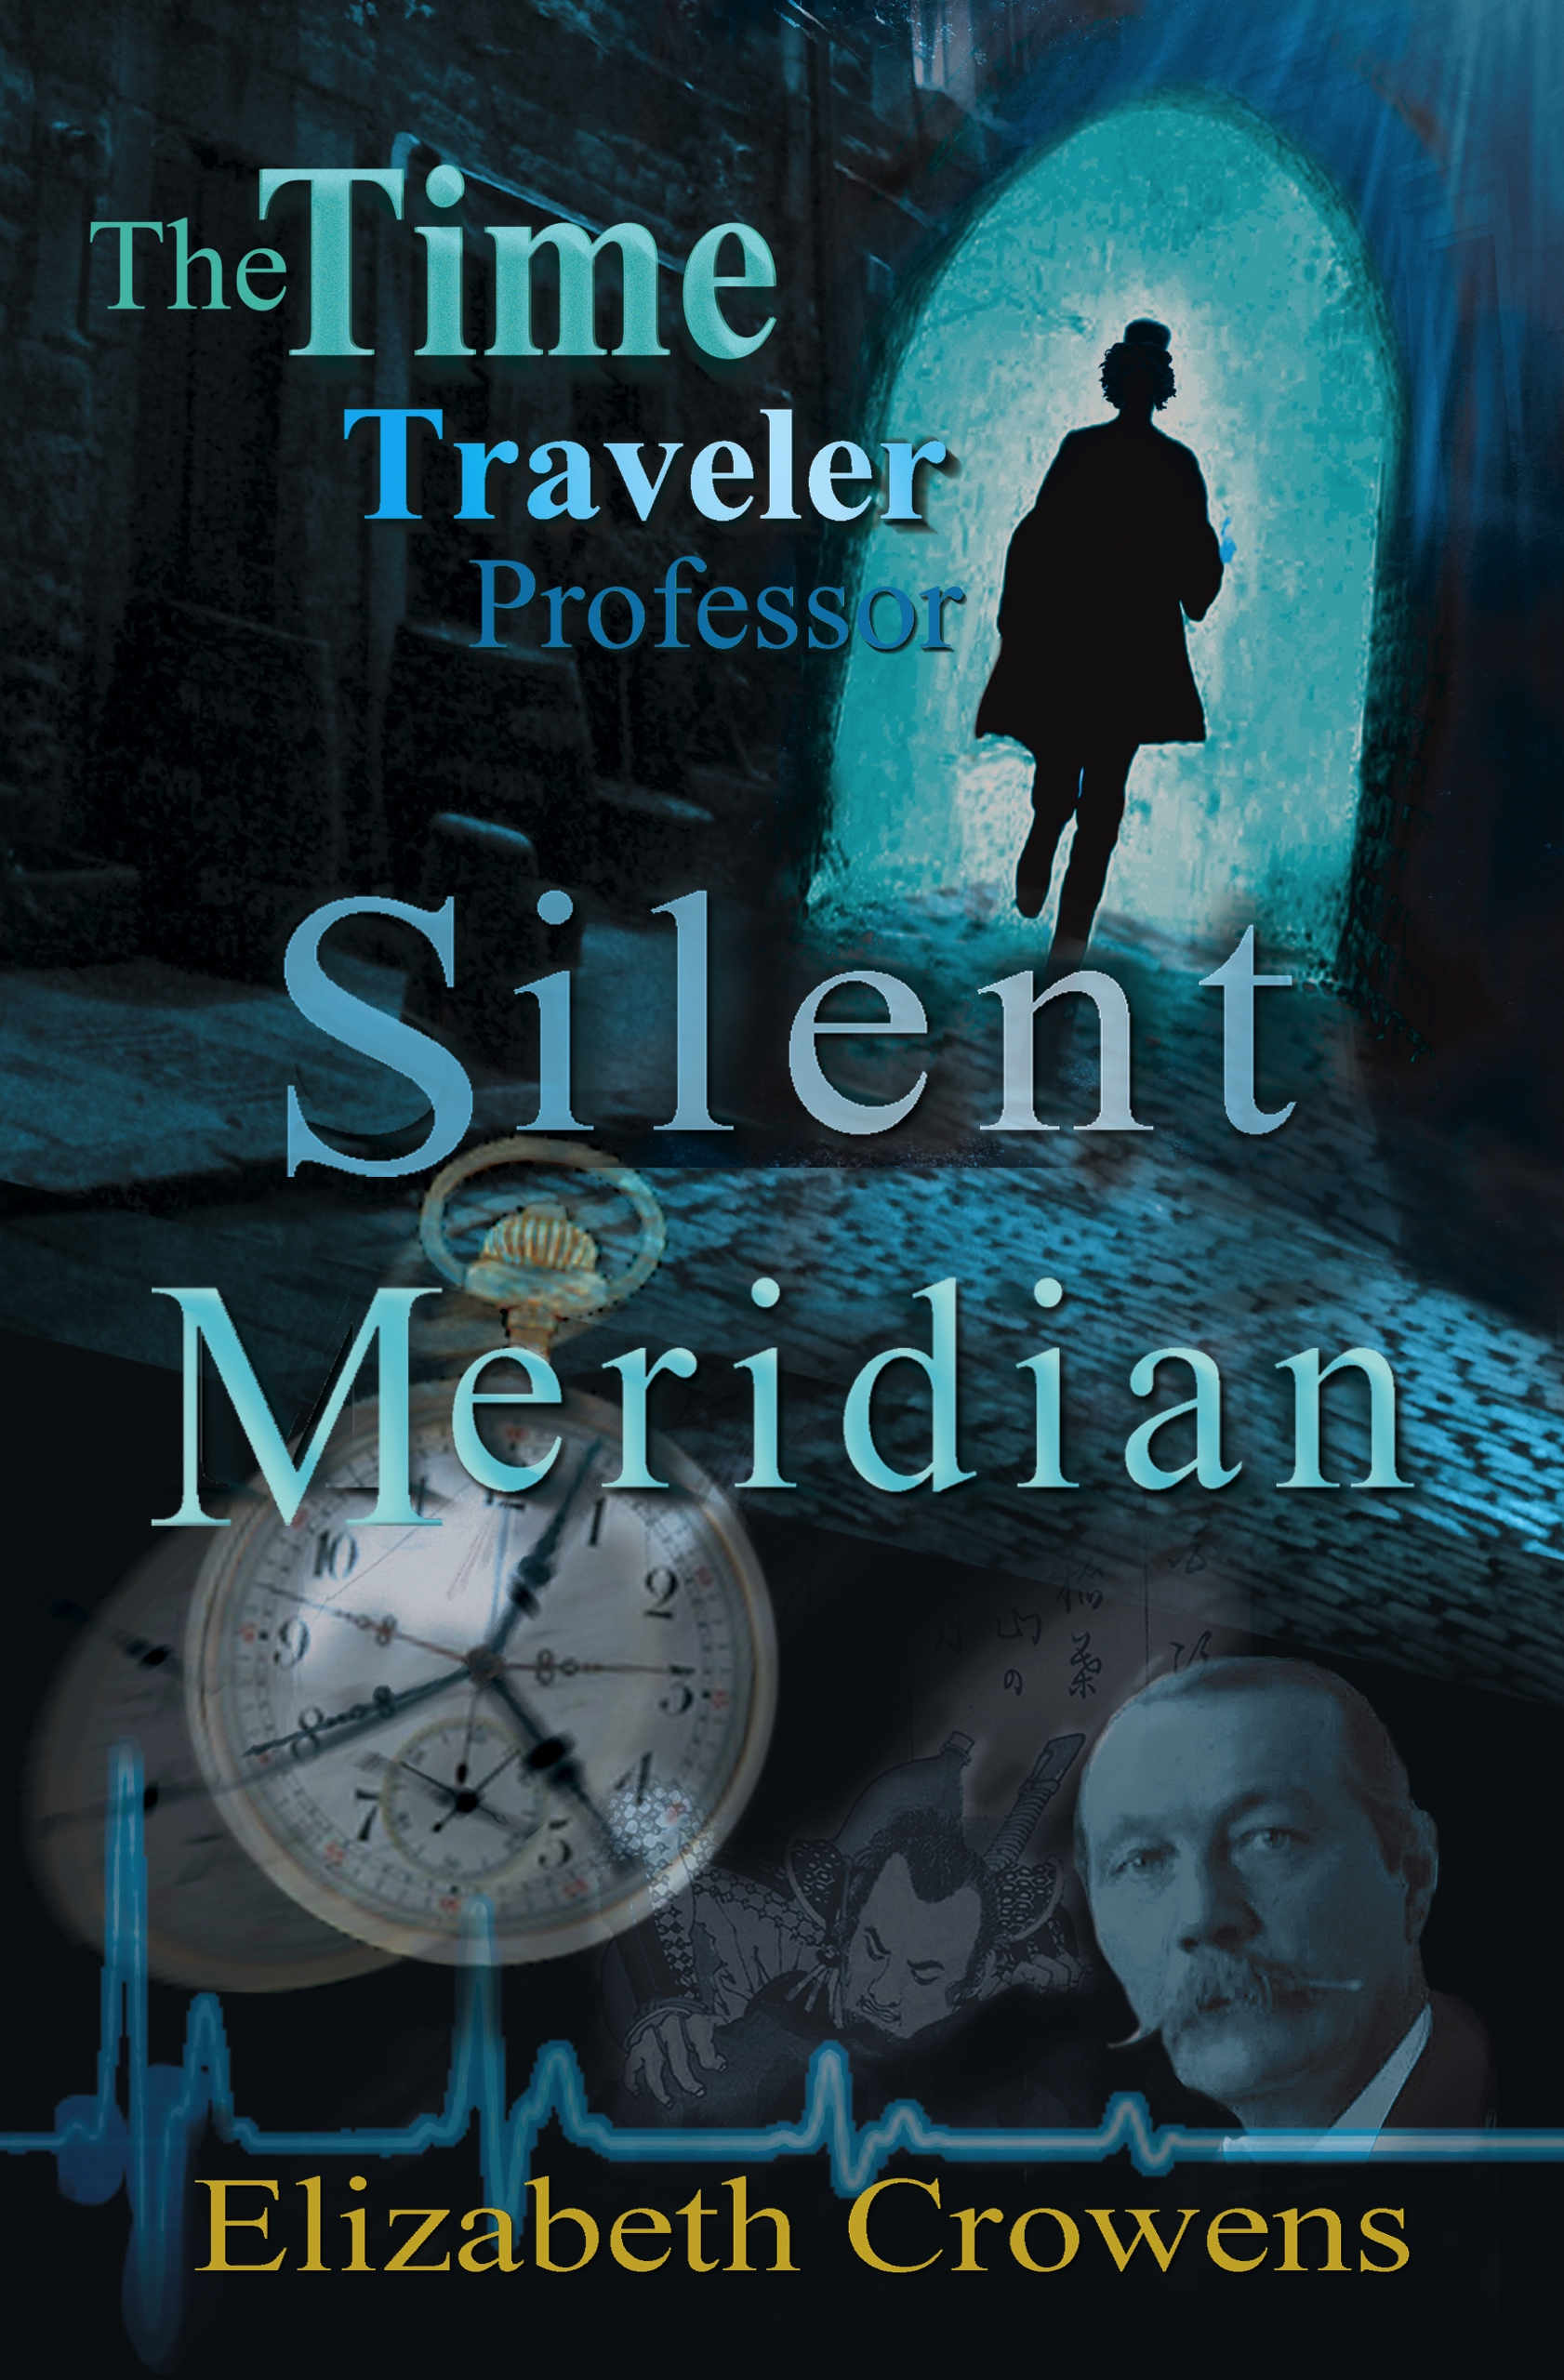 The Time Traveler Professor, Book One: Silent Meridian by Elizabeth Crowens